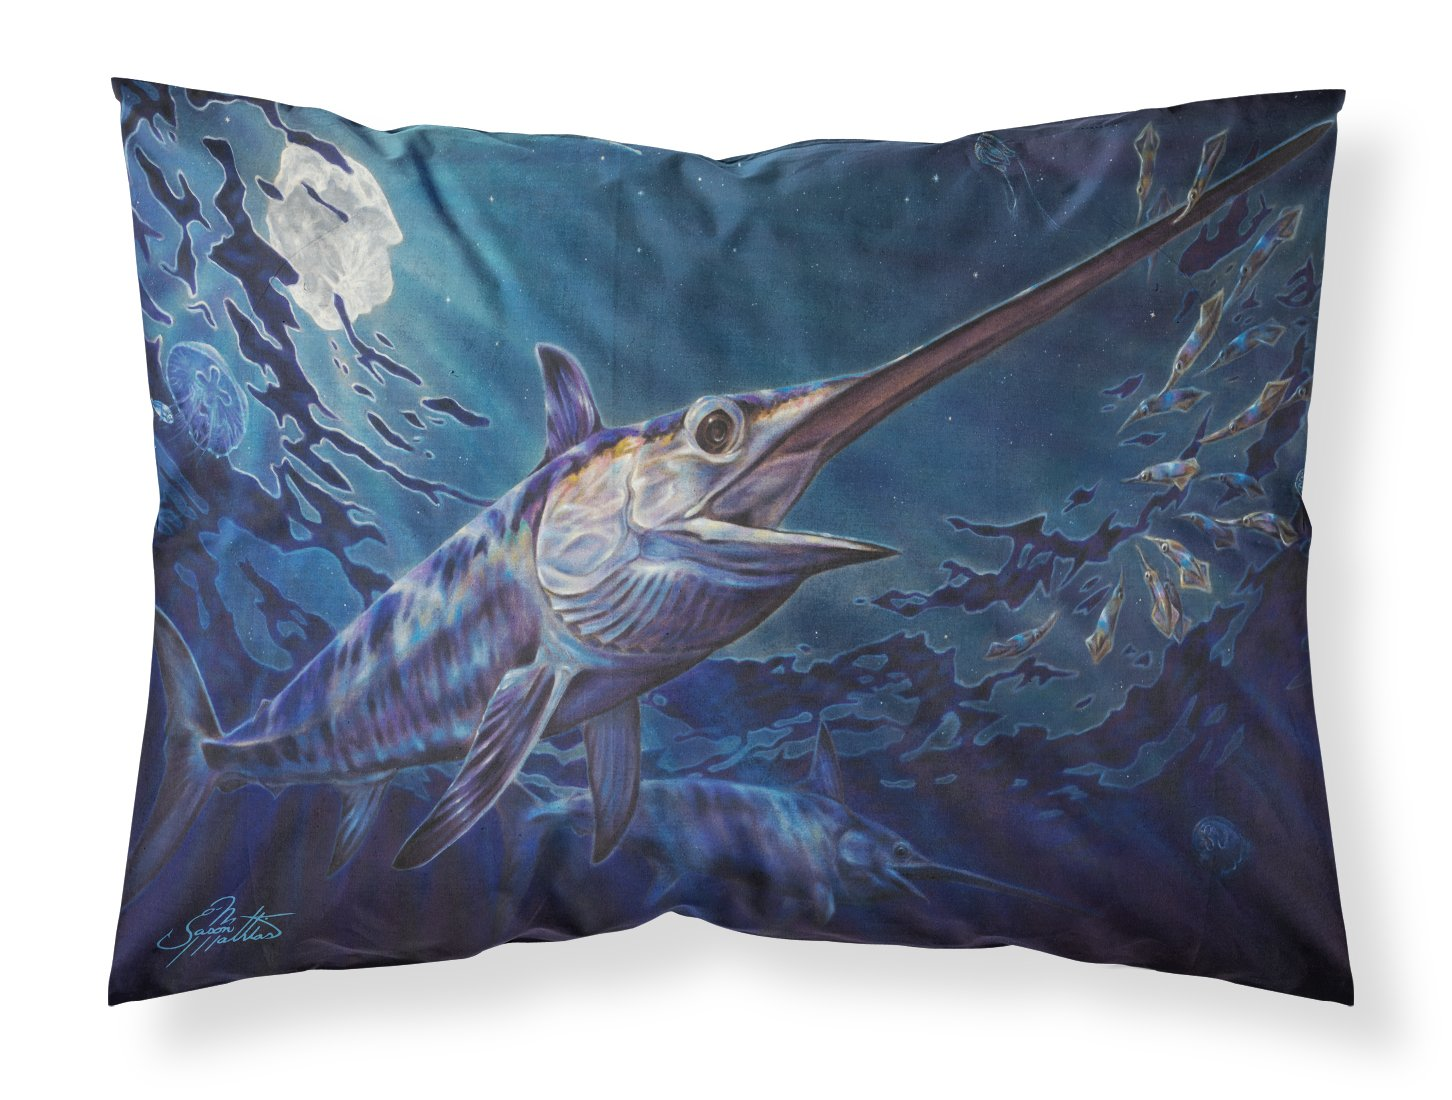 Prince Of Darkness Swordfish Fabric Standard Pillowcase JMA2006PILLOWCASE by Caroline's Treasures